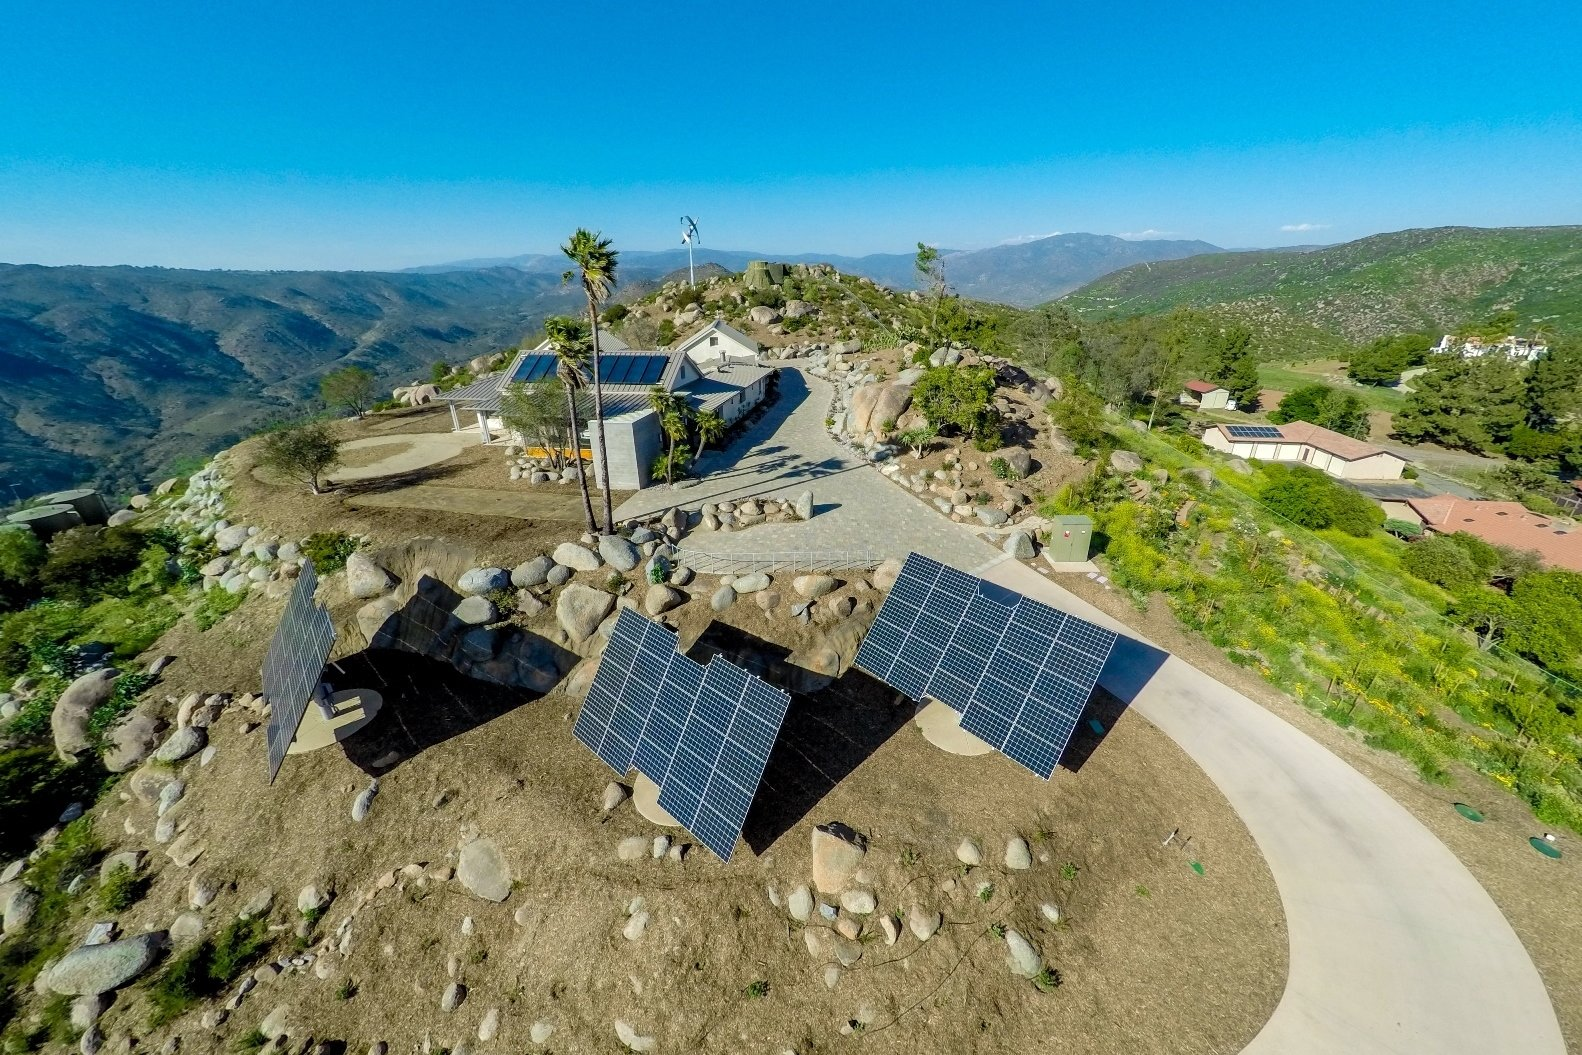 Casa Aguila Drone Photo of Home and Solar Panels